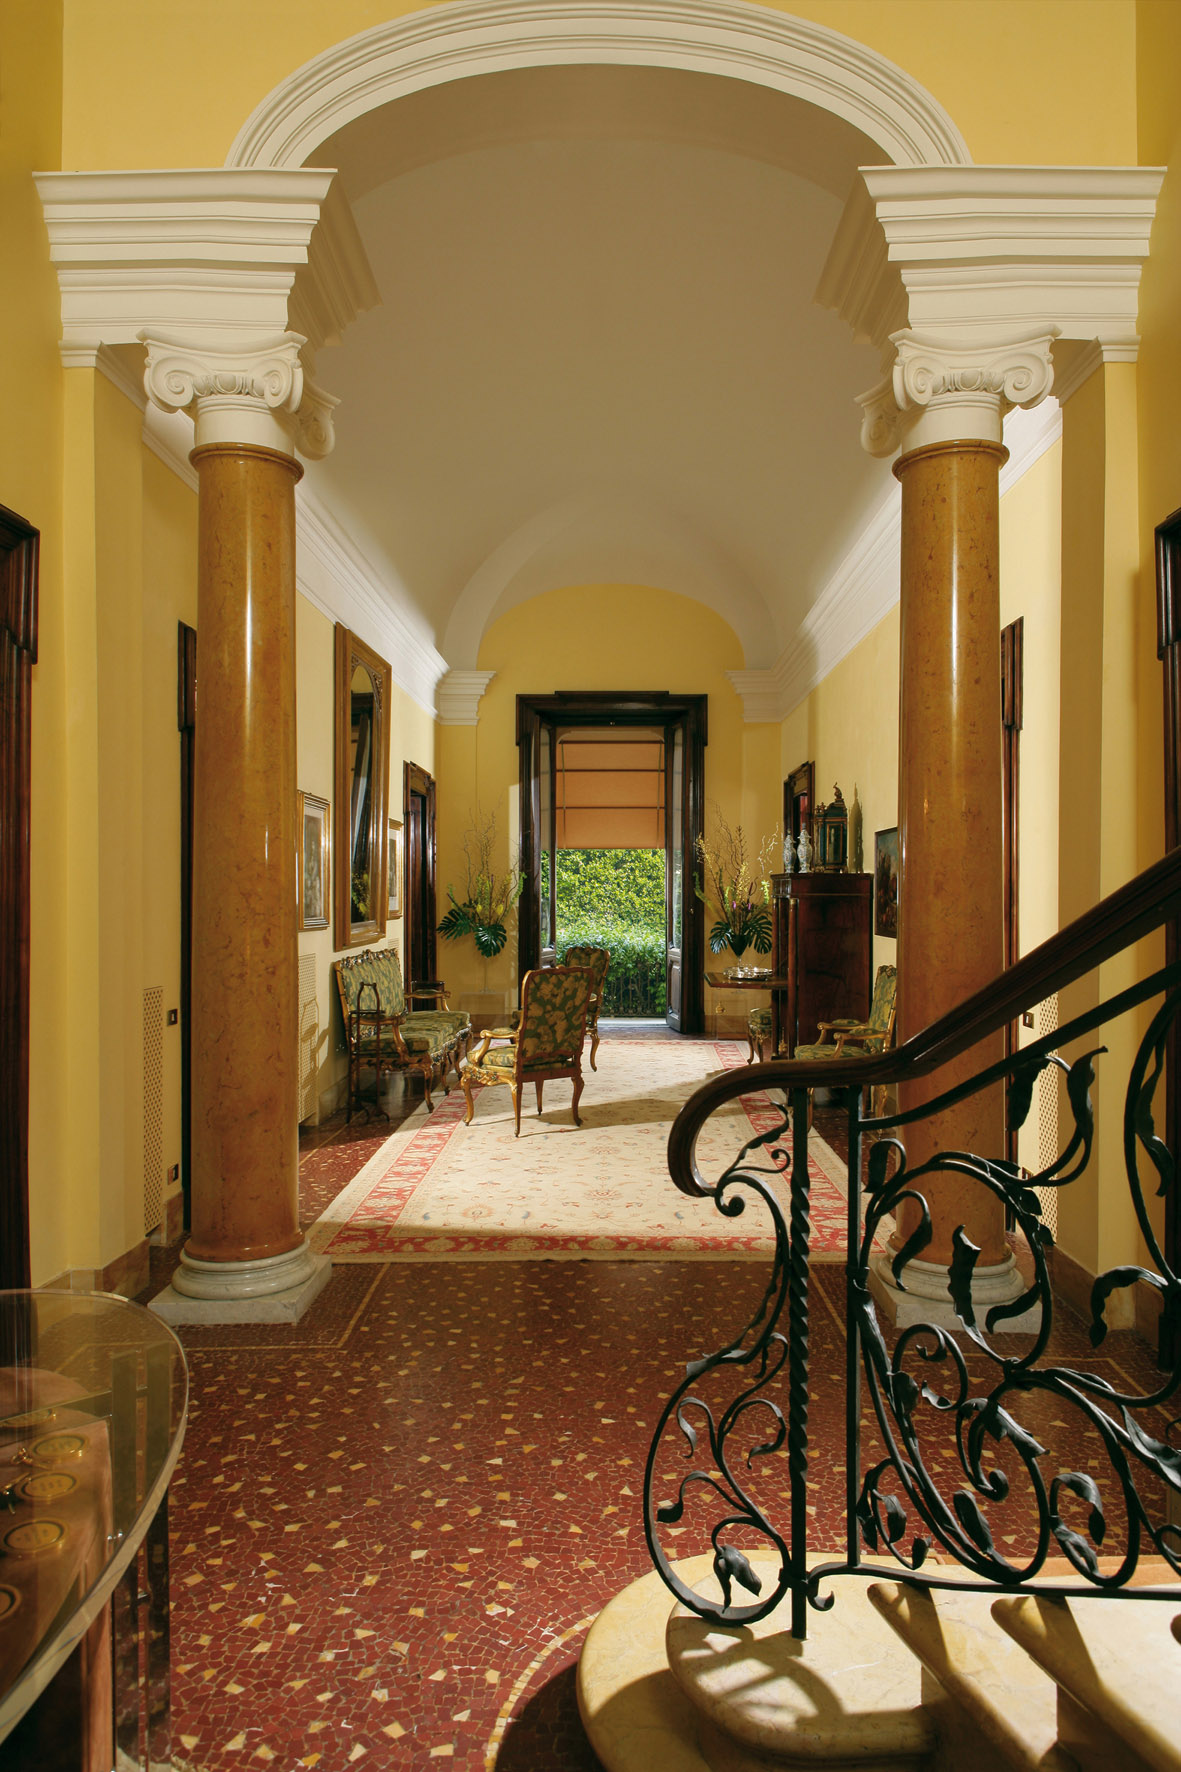 Weekend at Villa Spalletti Trivelli in Rome Italy Weekend ideas